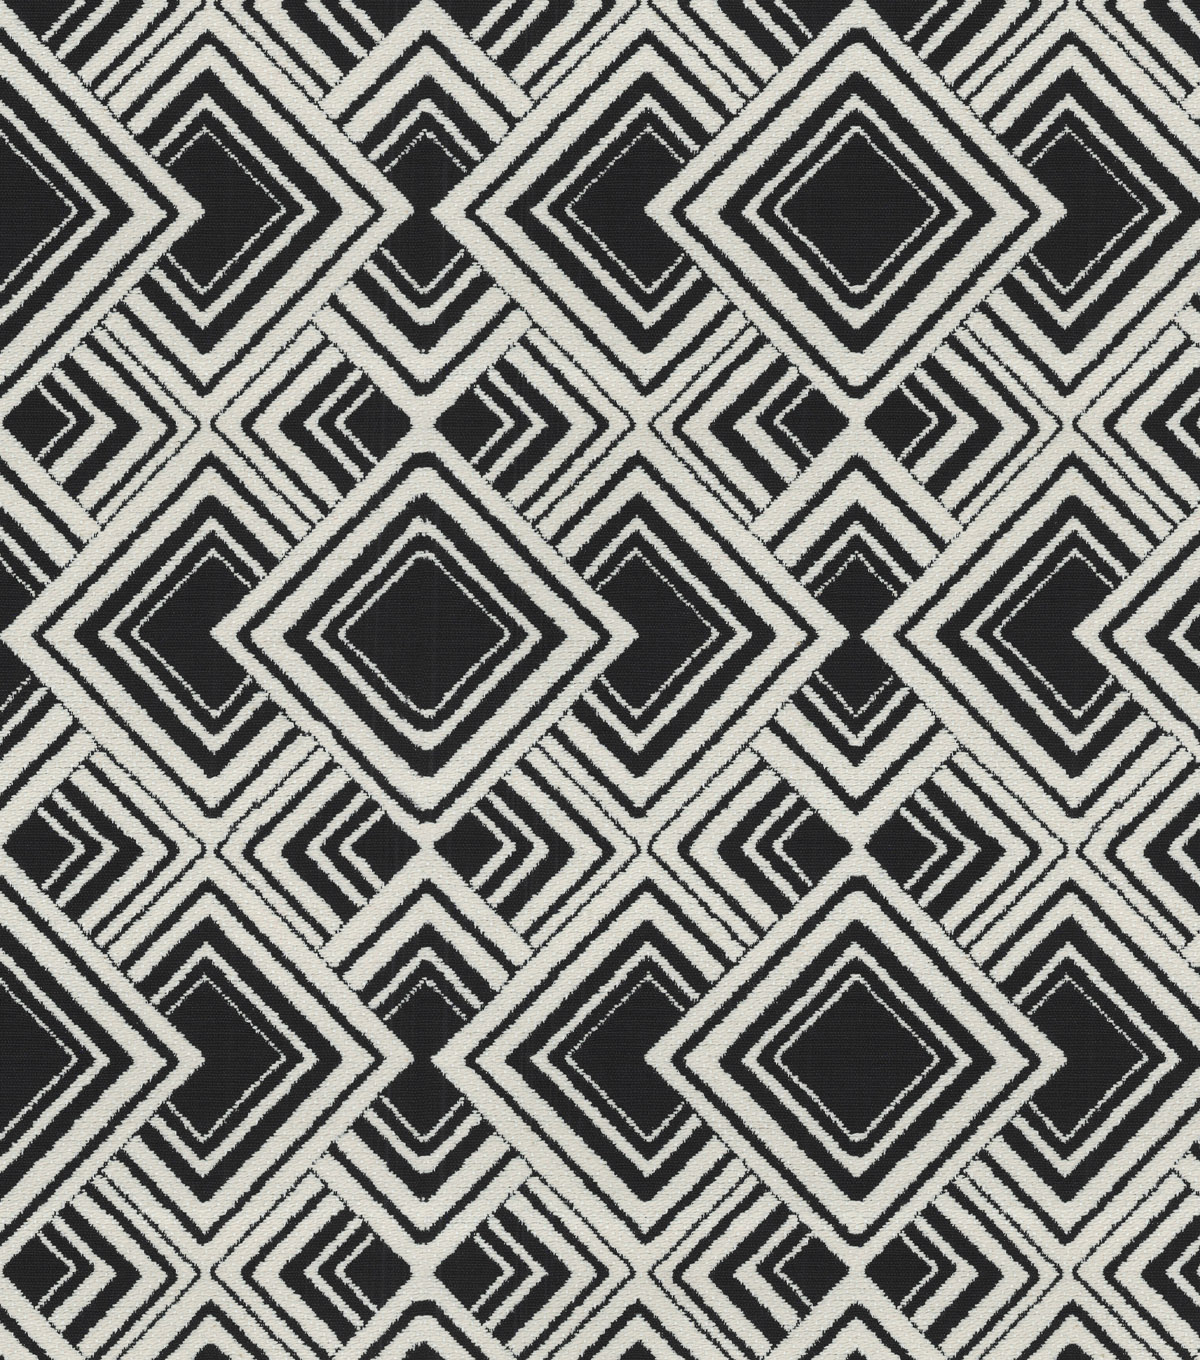 HGTV Home Upholstery Fabric-Diamond Reps/Zinc